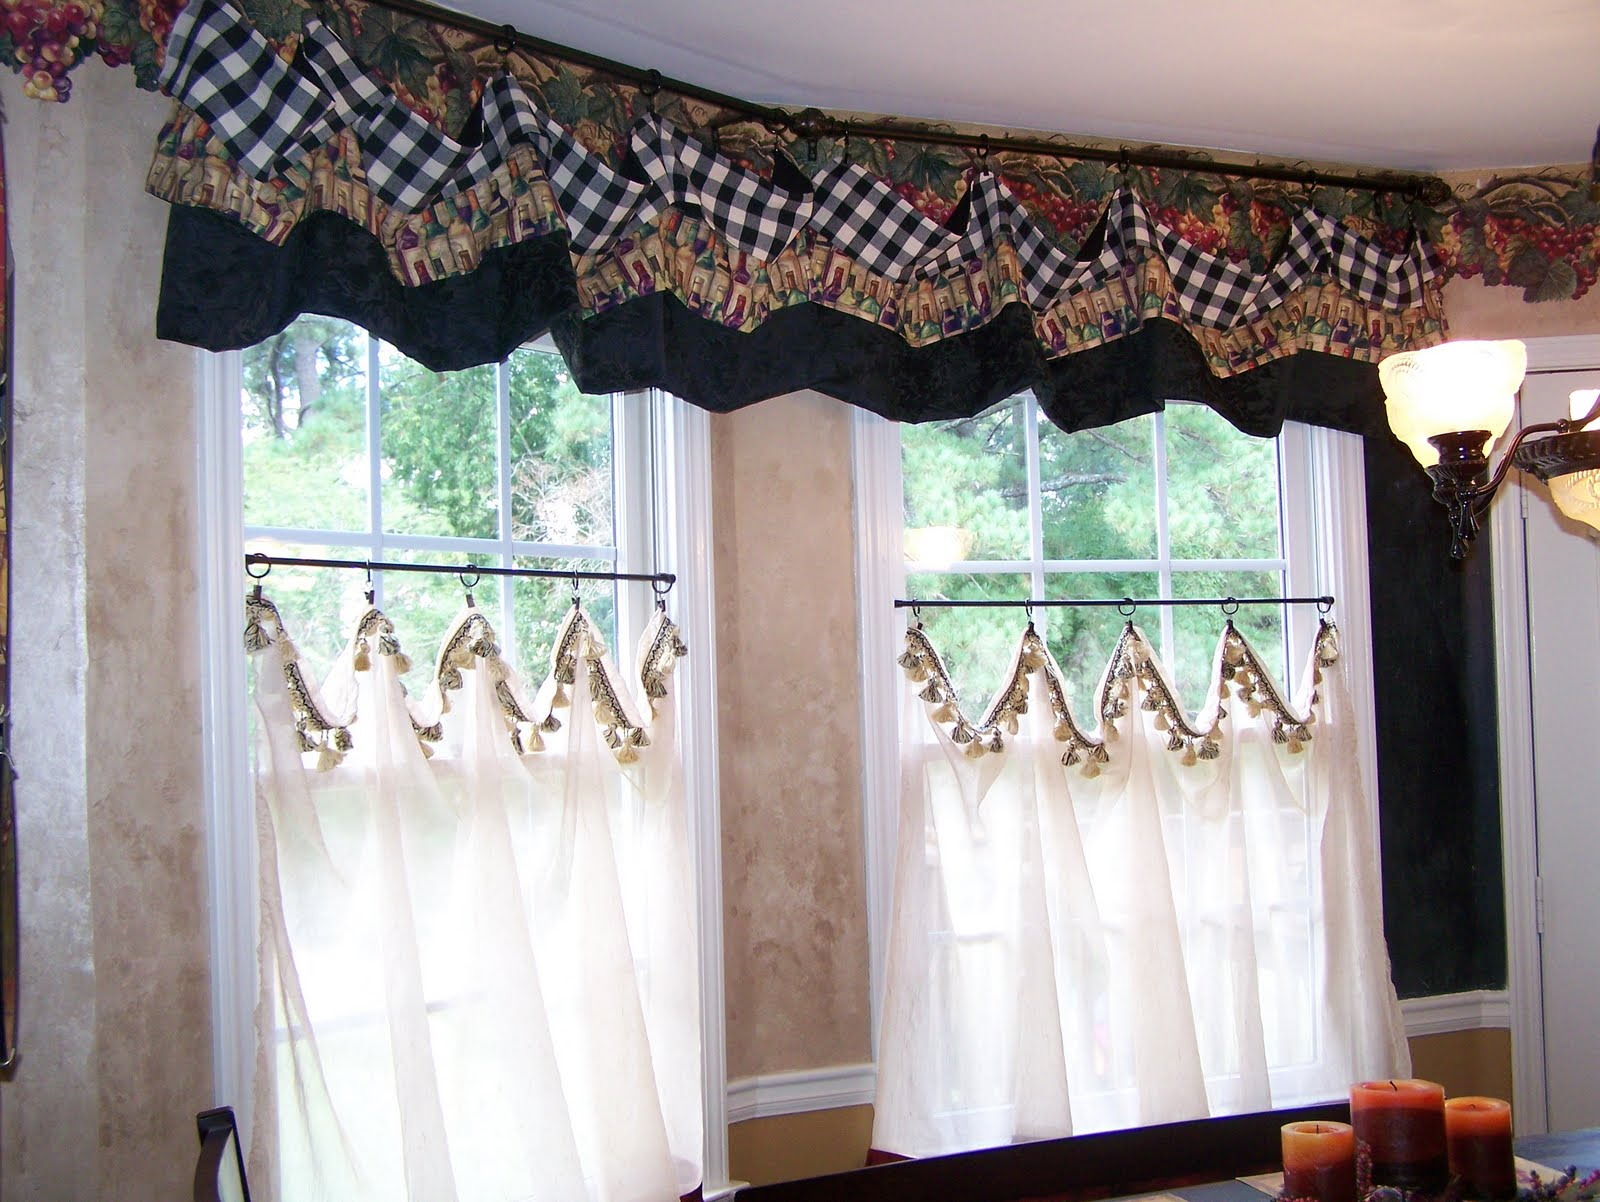 Curtains Patchwork Curtains On Pinterest Patchwork Curtains Patchwork And Curtains